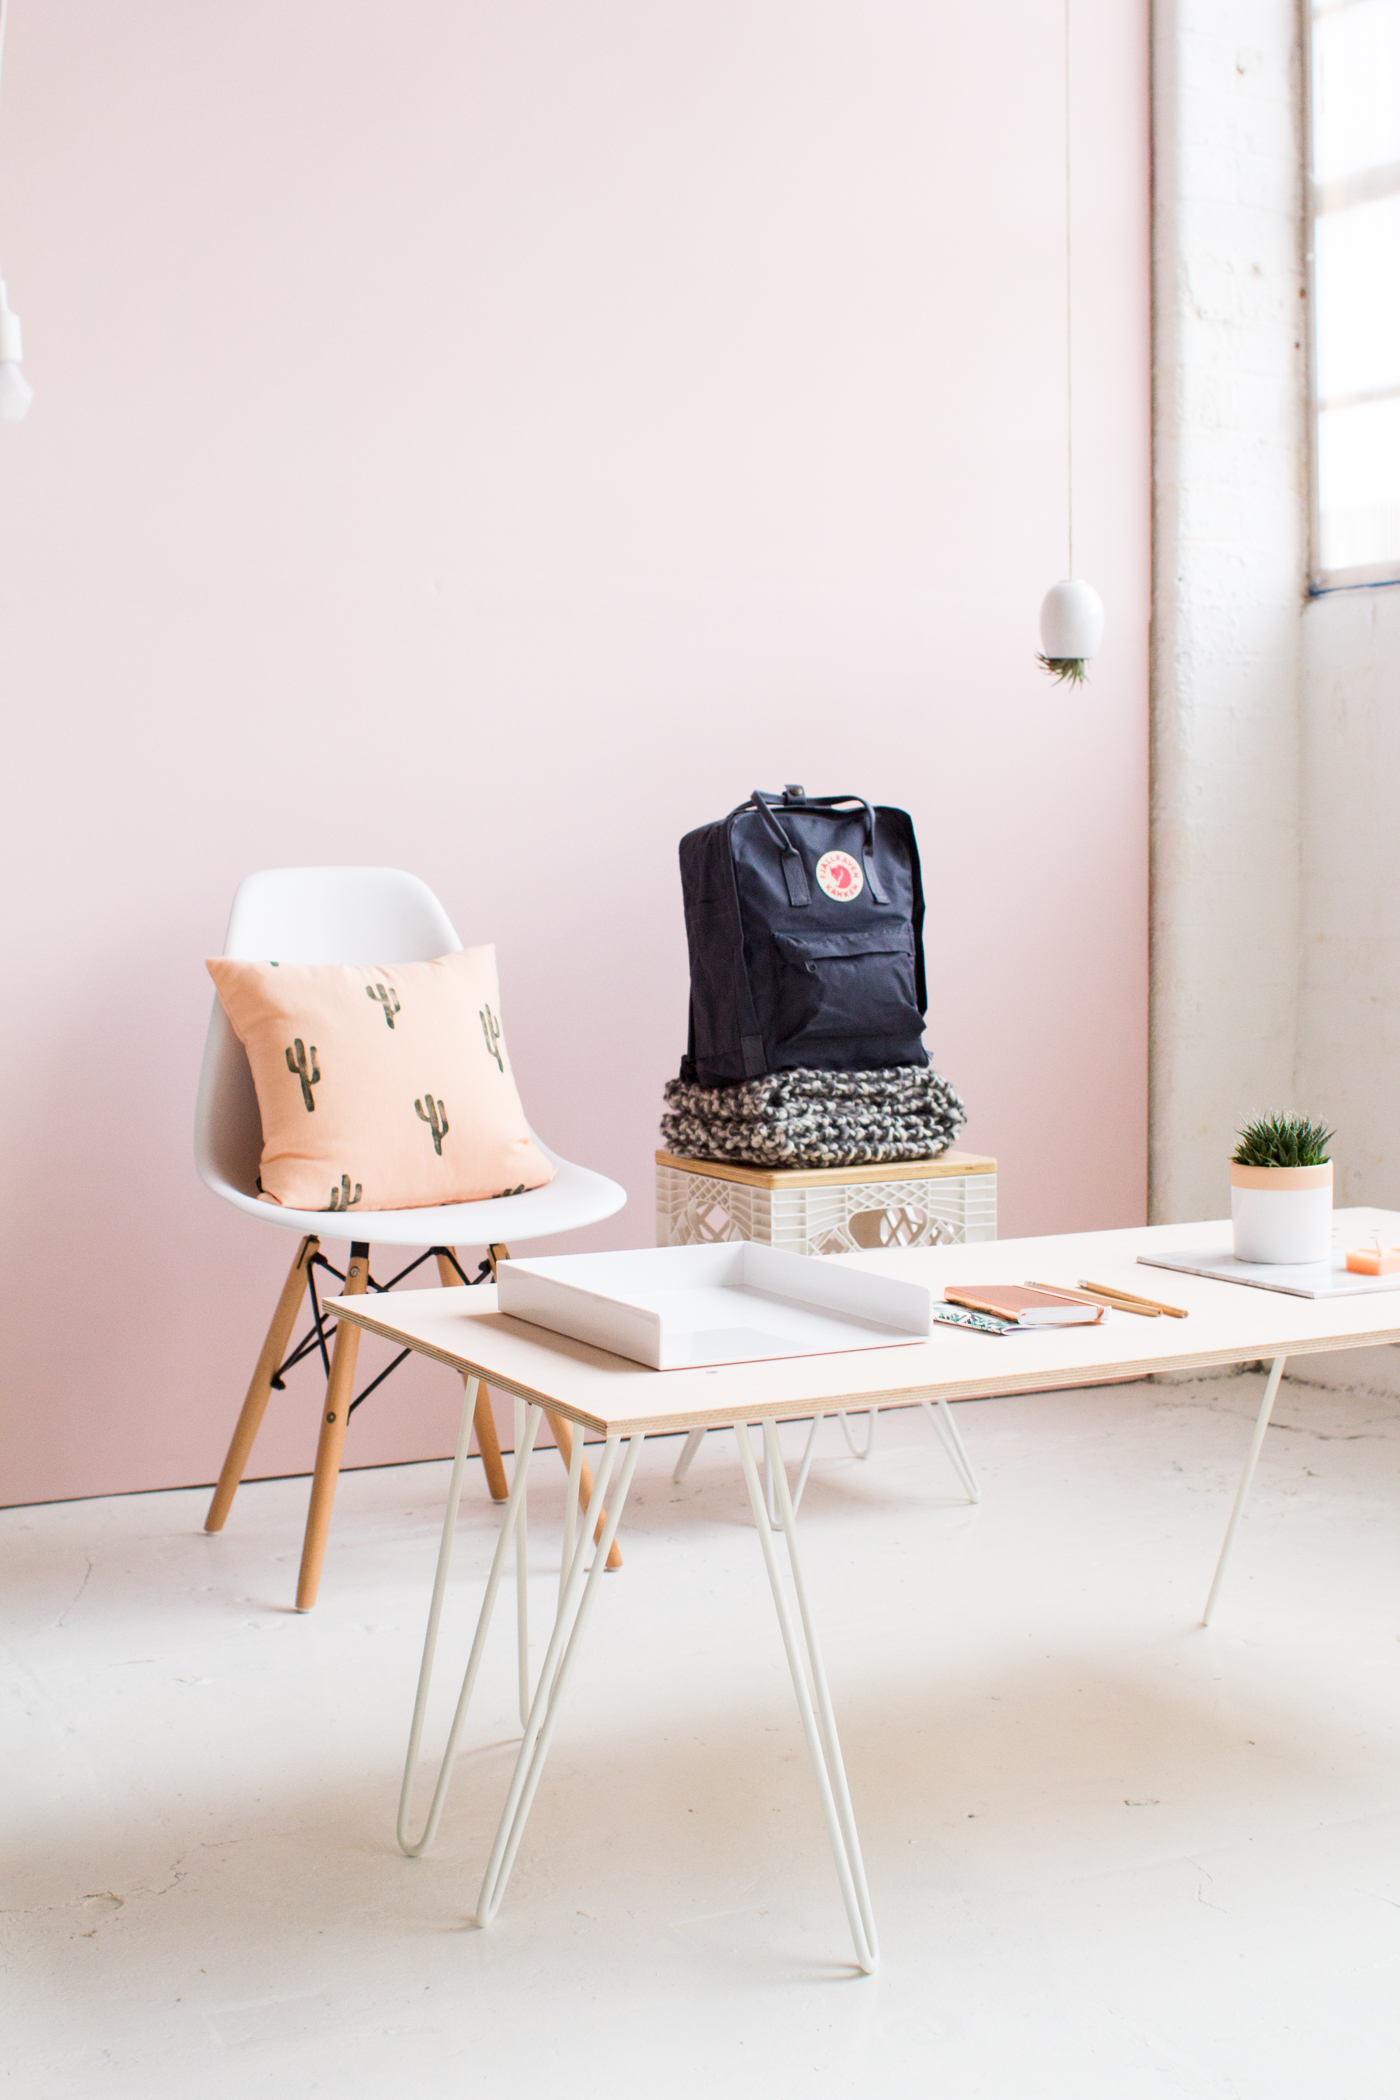 DIY SWENYO Skurniture Pink Washed Plywood Coffee Table | @fallfordiy